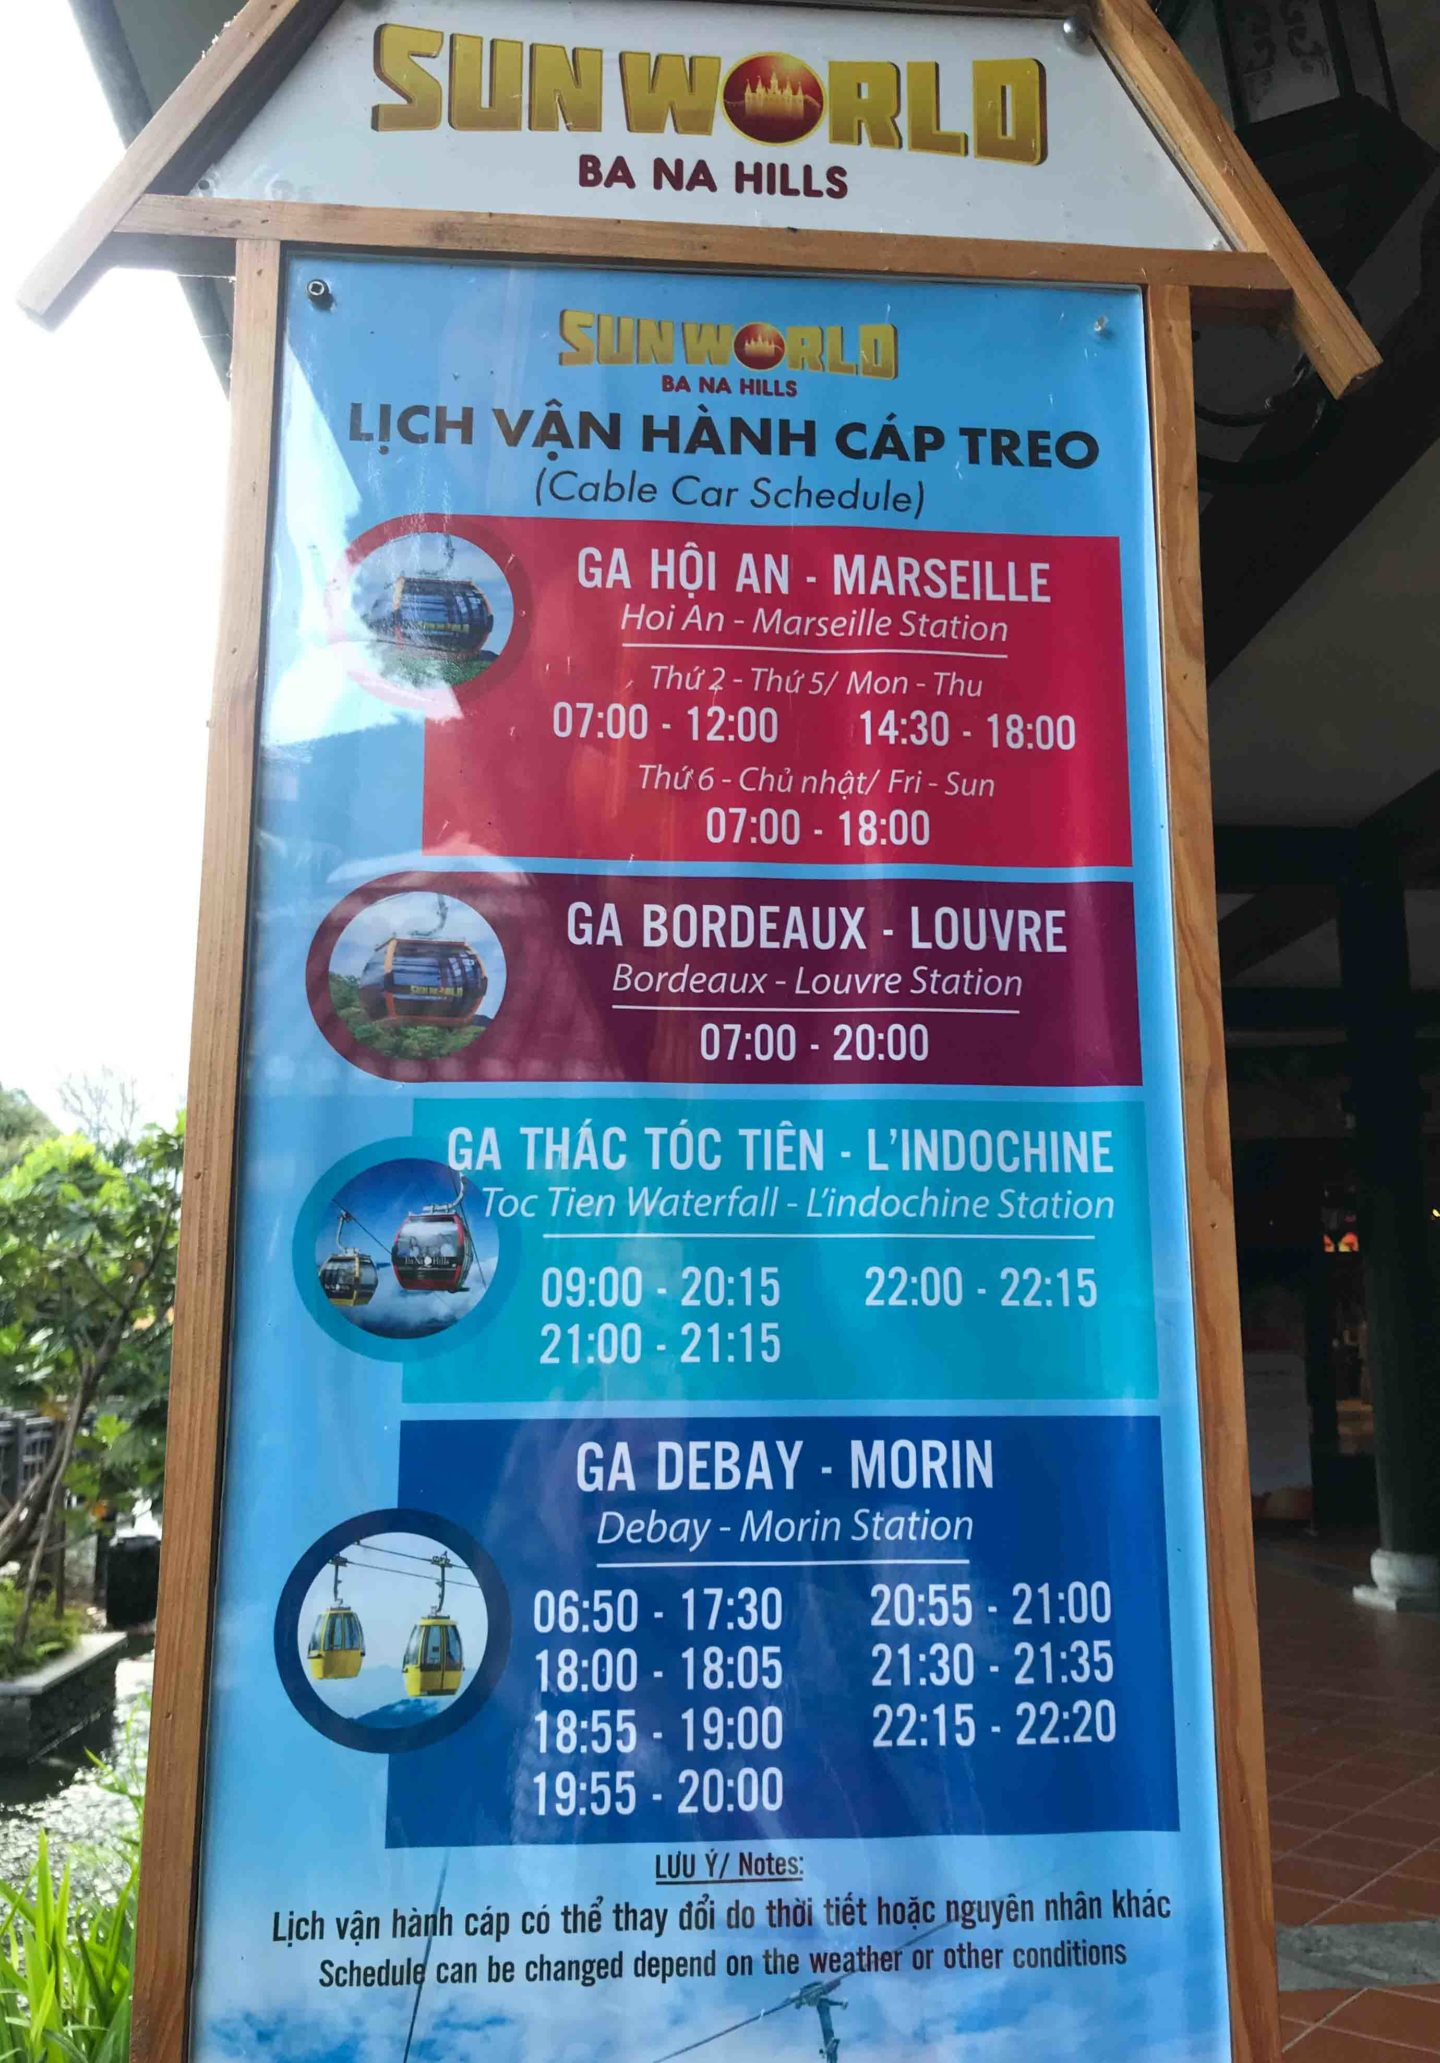 Cable car schedule to go on top of the Ba Na Hills, Da Nang